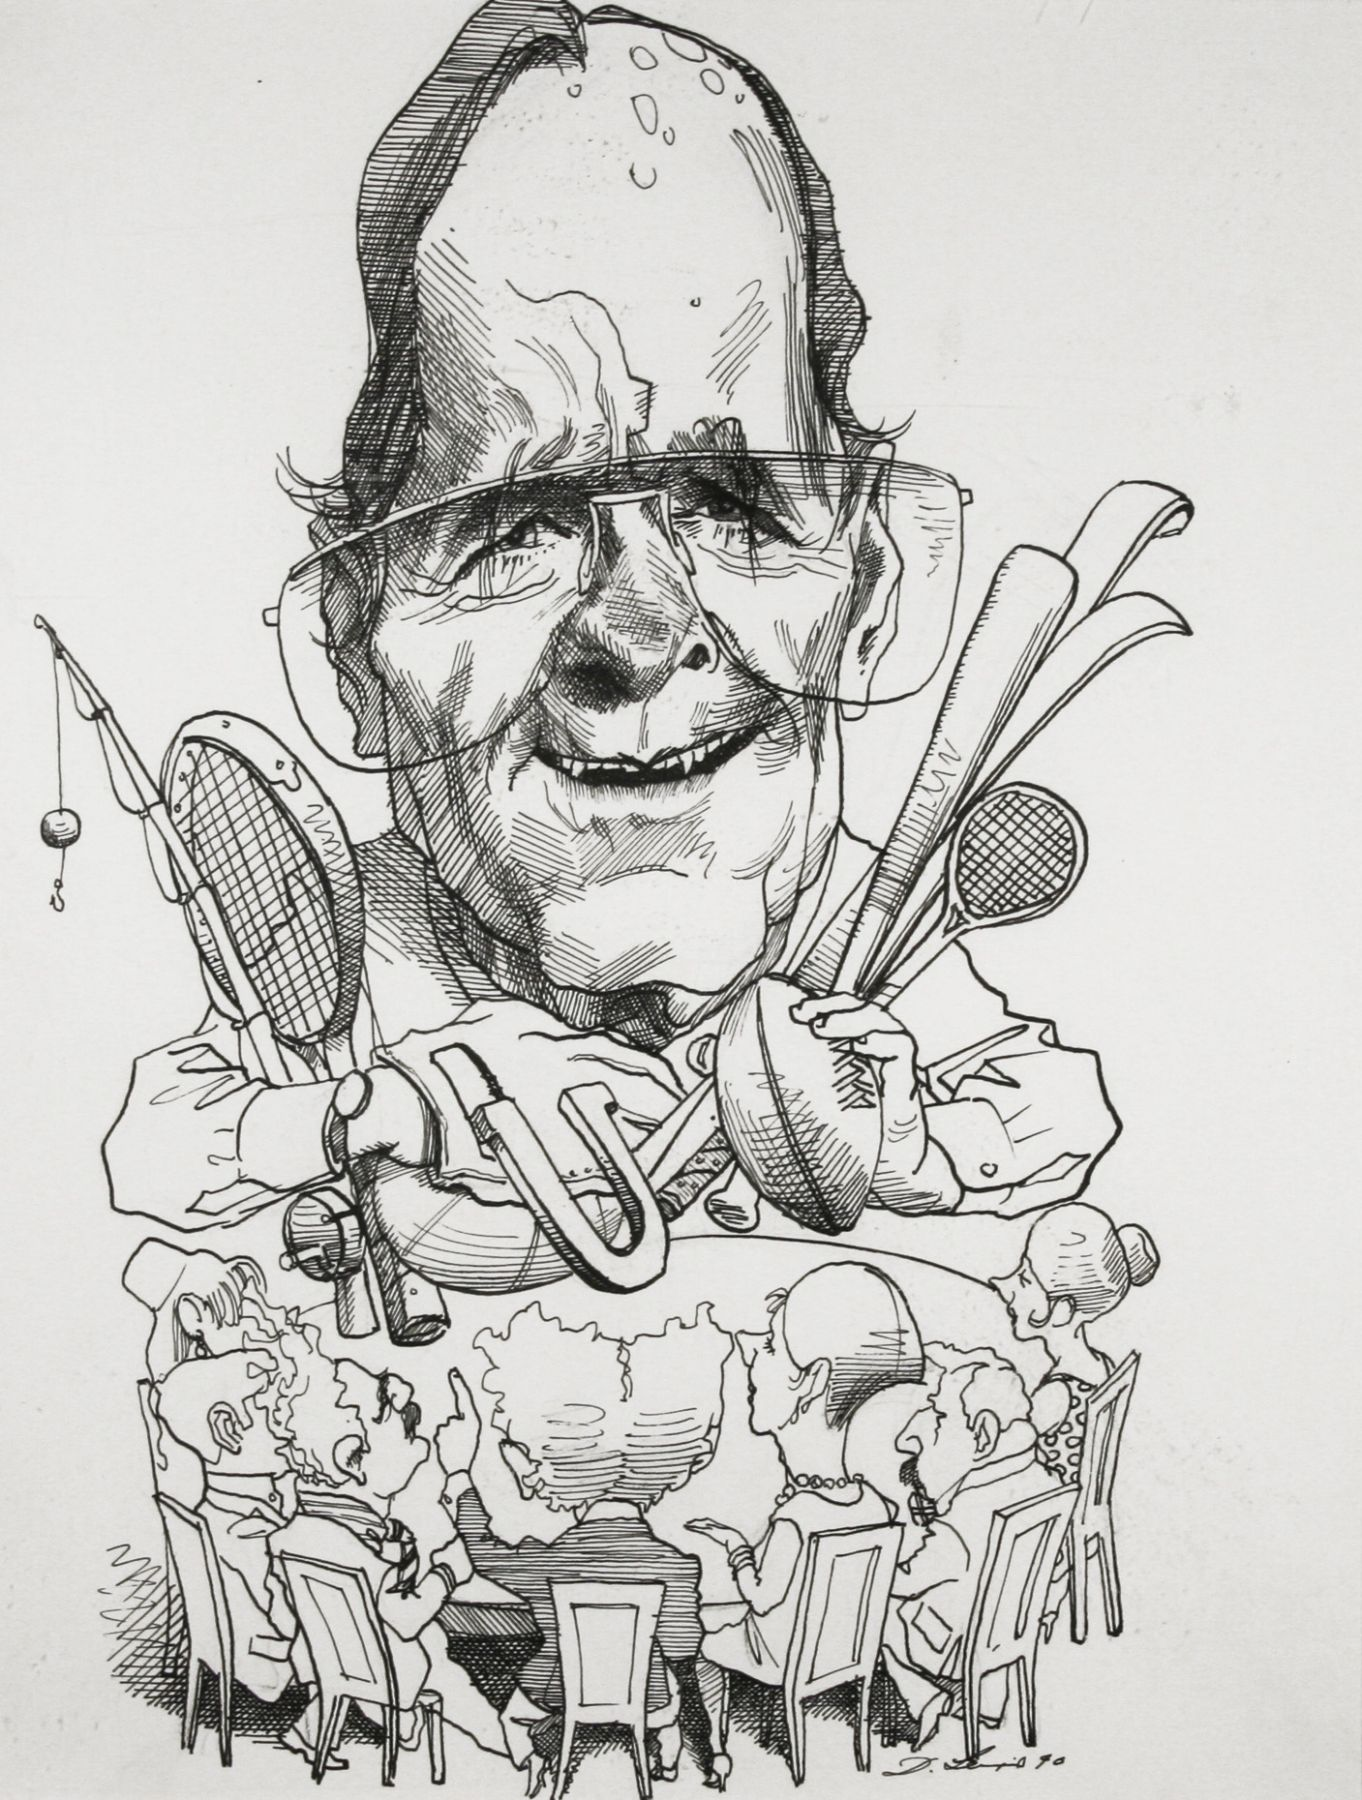 David Levine, George Bush, 1990, ink on paper, 13 3/4 x 11 inches